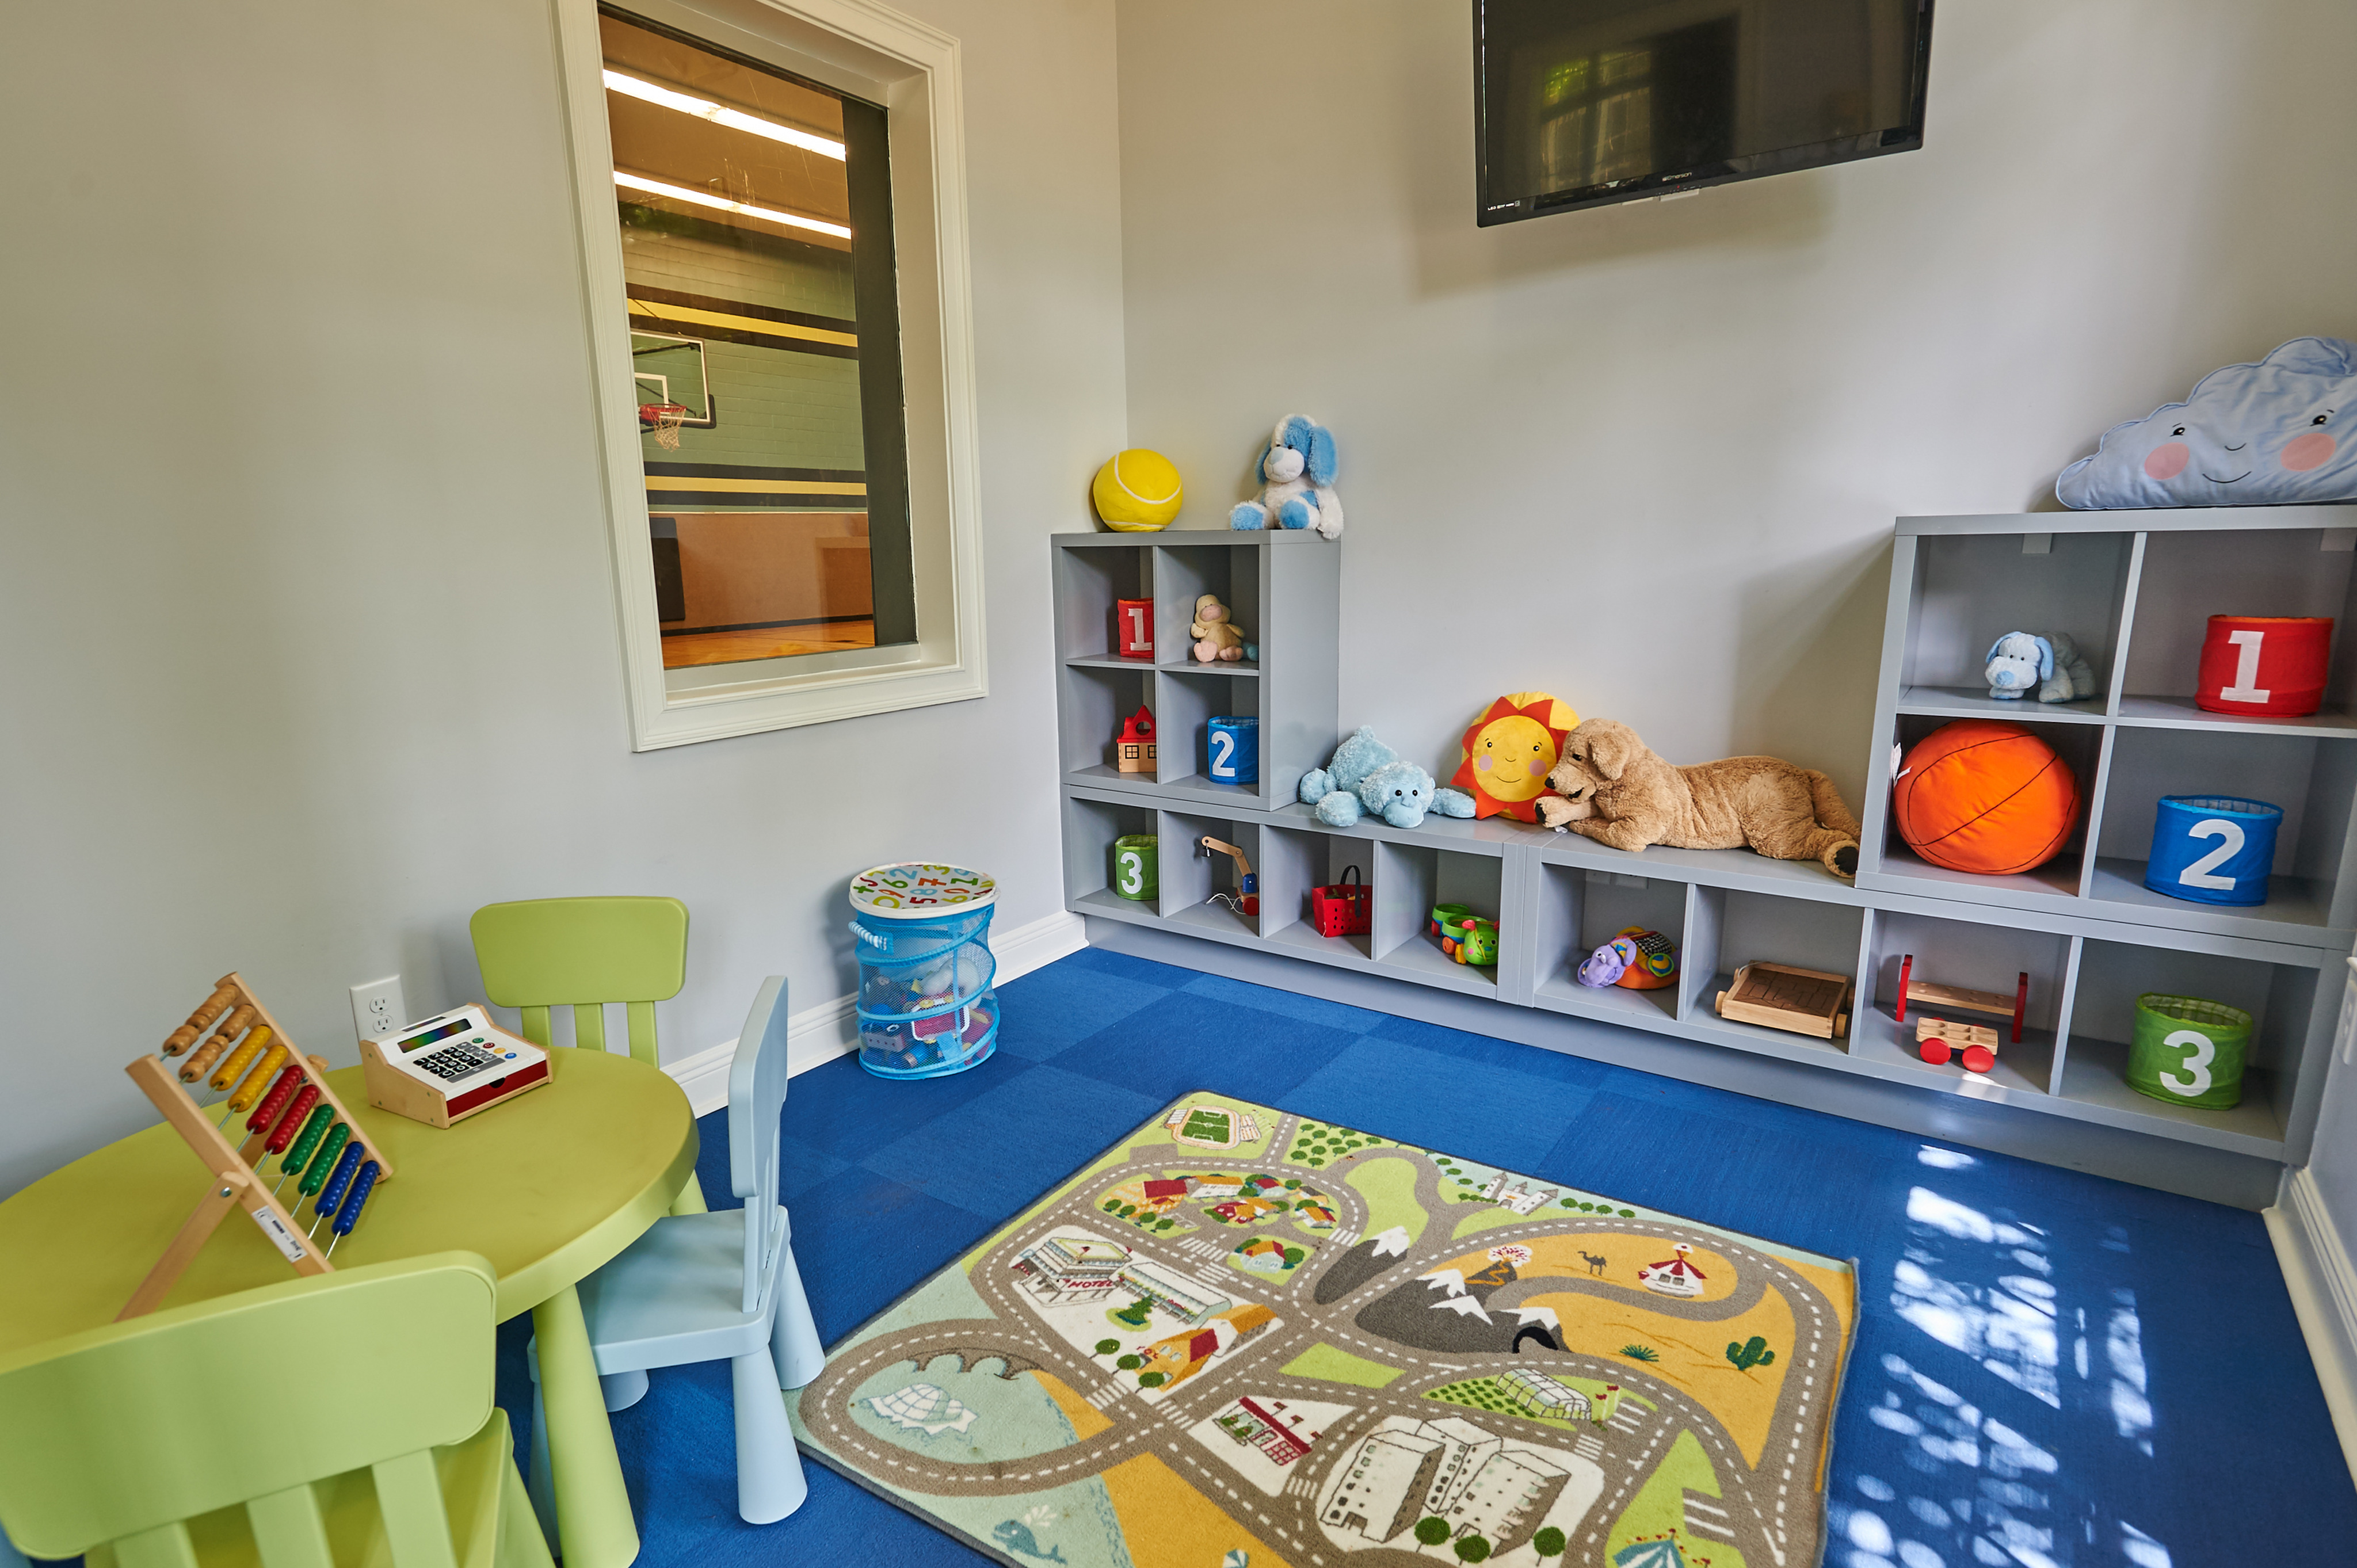 View of Children\'s Activity Room, Showing Table With Chairs, Games, Cubbies, and Window Into Sport Court at Cottonwood Reserve Apartments